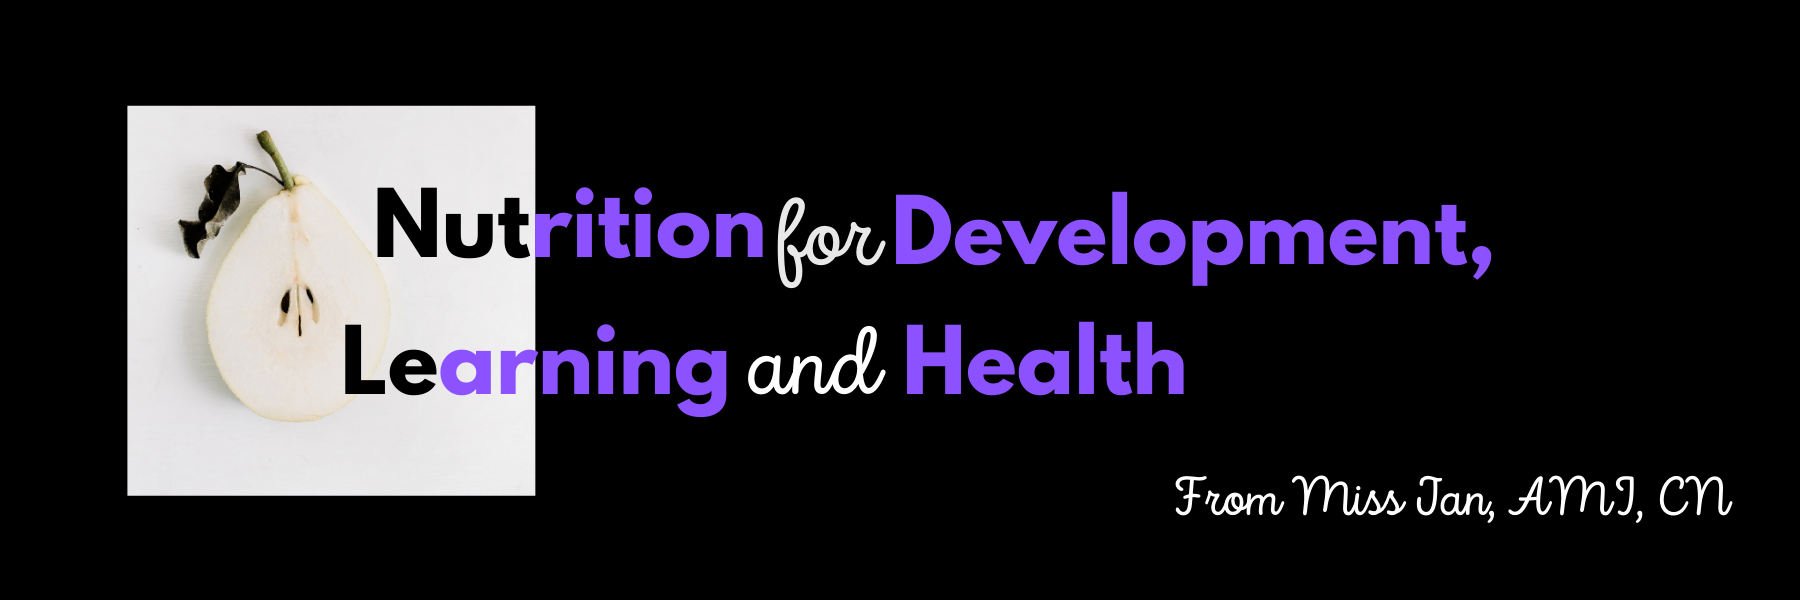 Nutrition for Learning